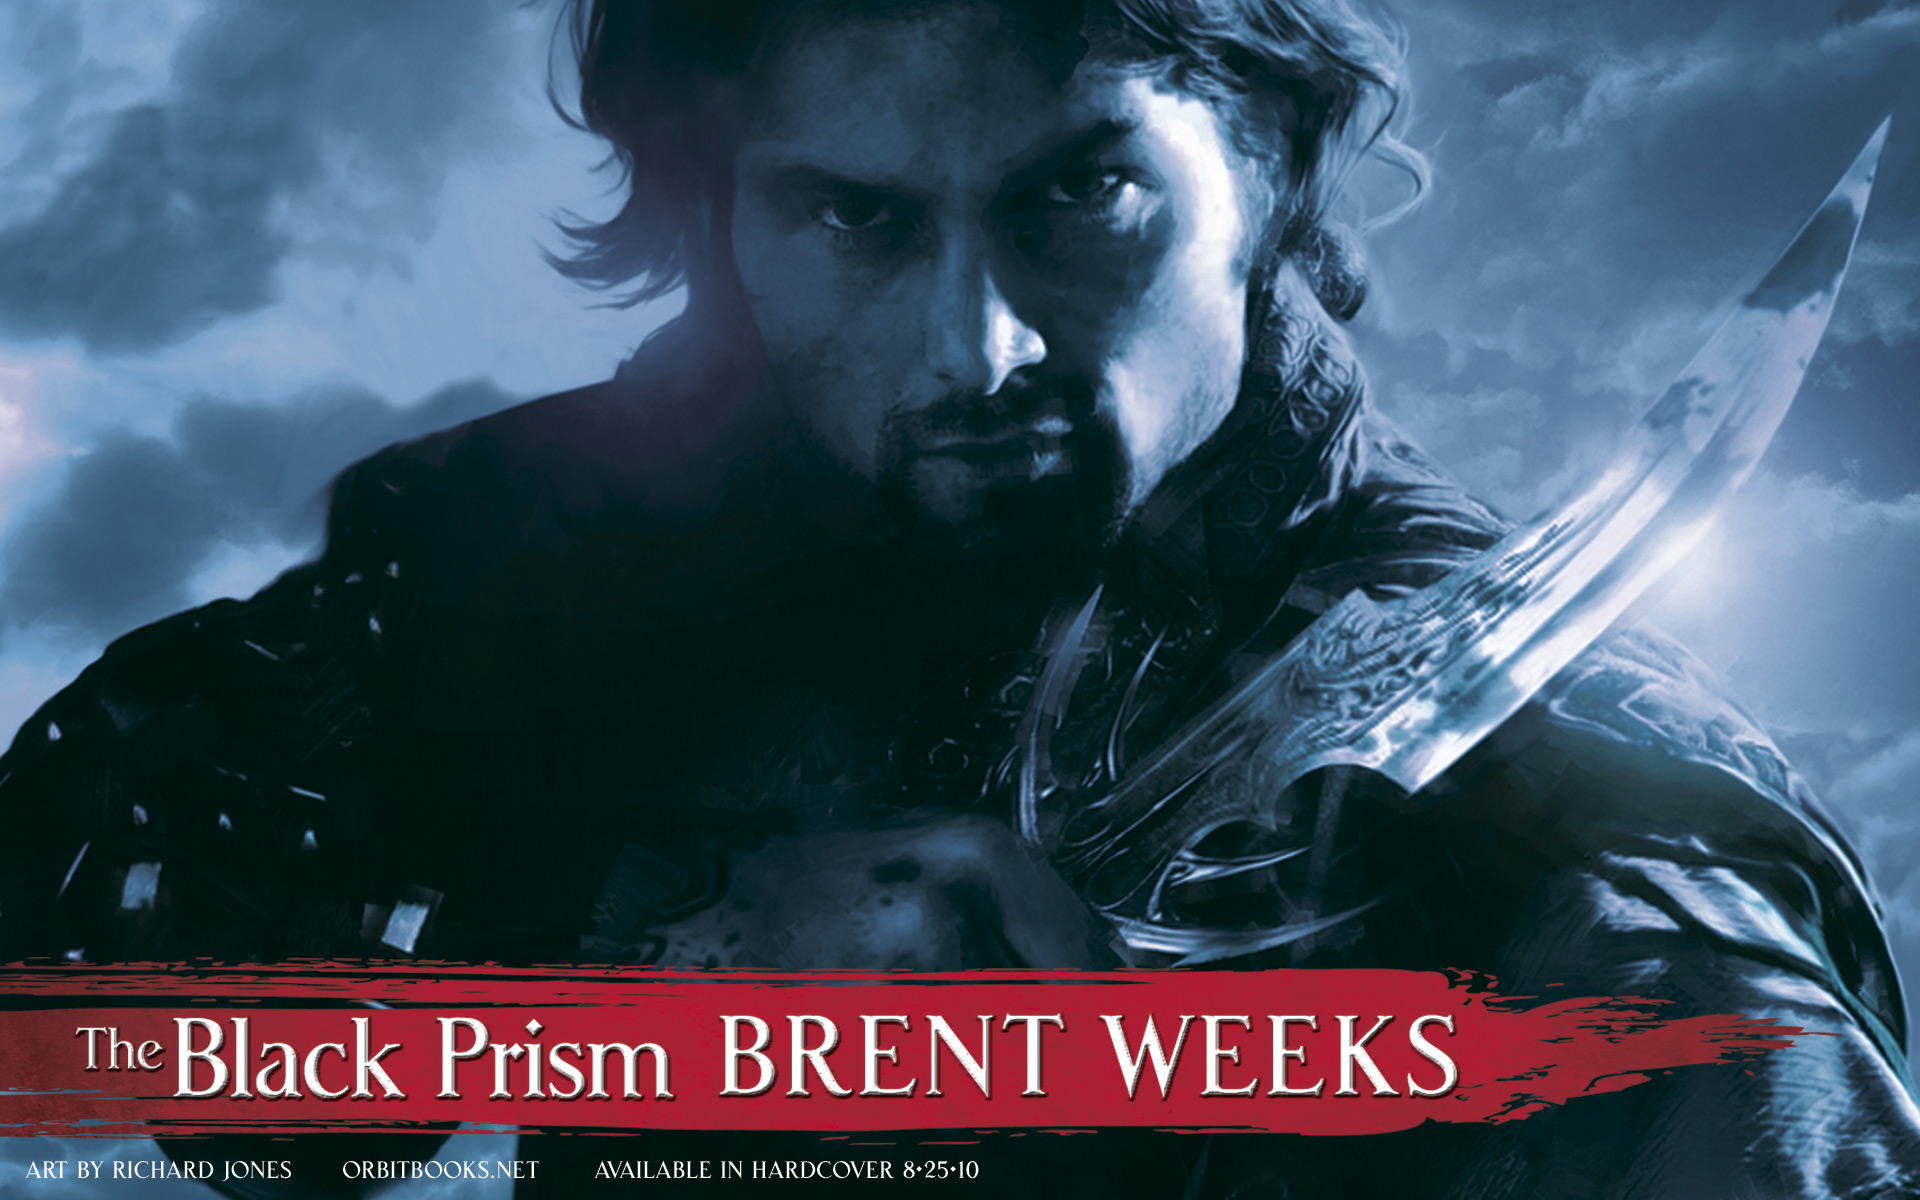 Just love this cover art for The Black Prism by Brent Weeks